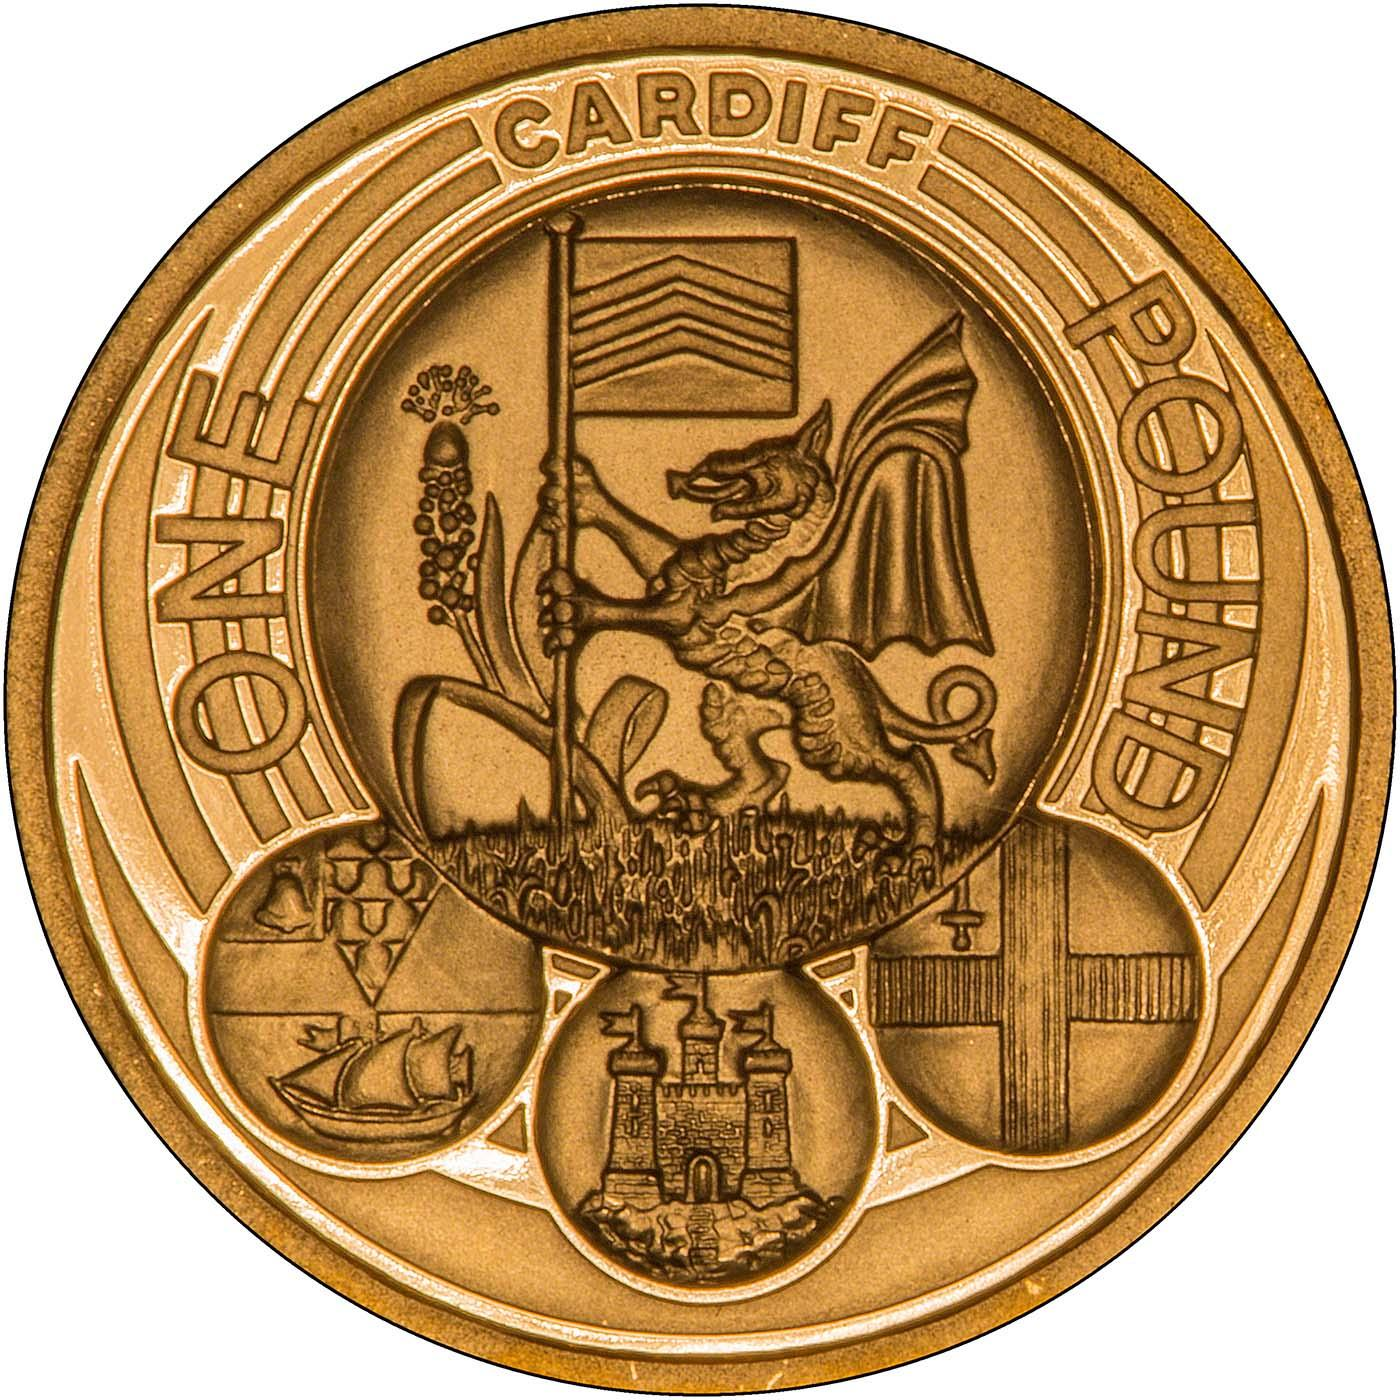 2011-gold-proof-cardiff-1-coin-single-united-kingdom-the-royal-mint-24453.jpg